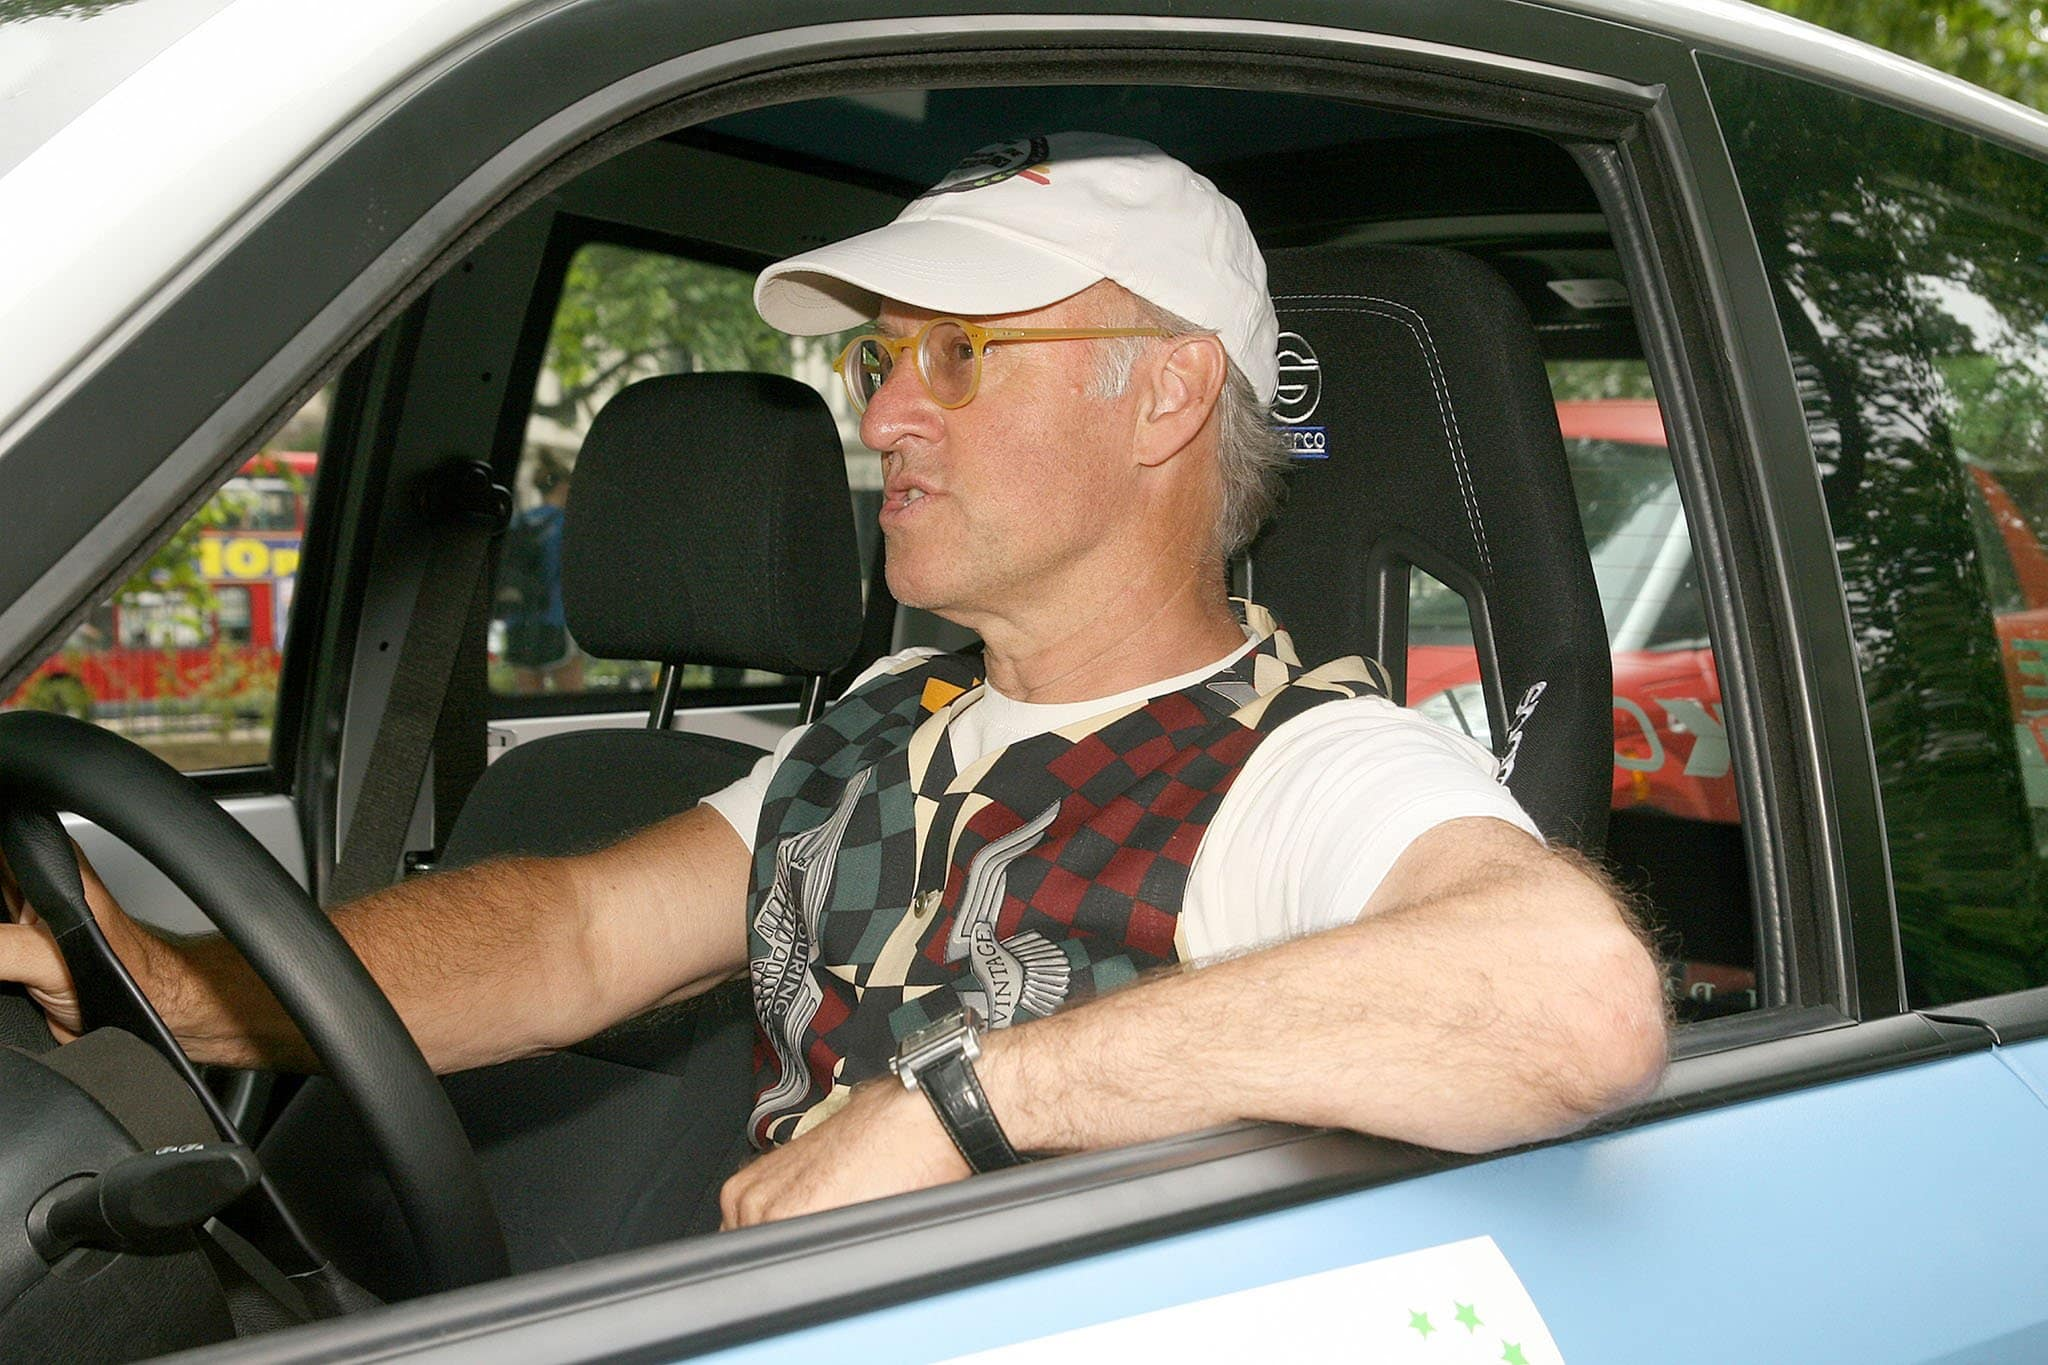 Mulberry founder Roger Saul driving an electric car during the 2010 Brighton to London Eco Rally on July 7, 2010